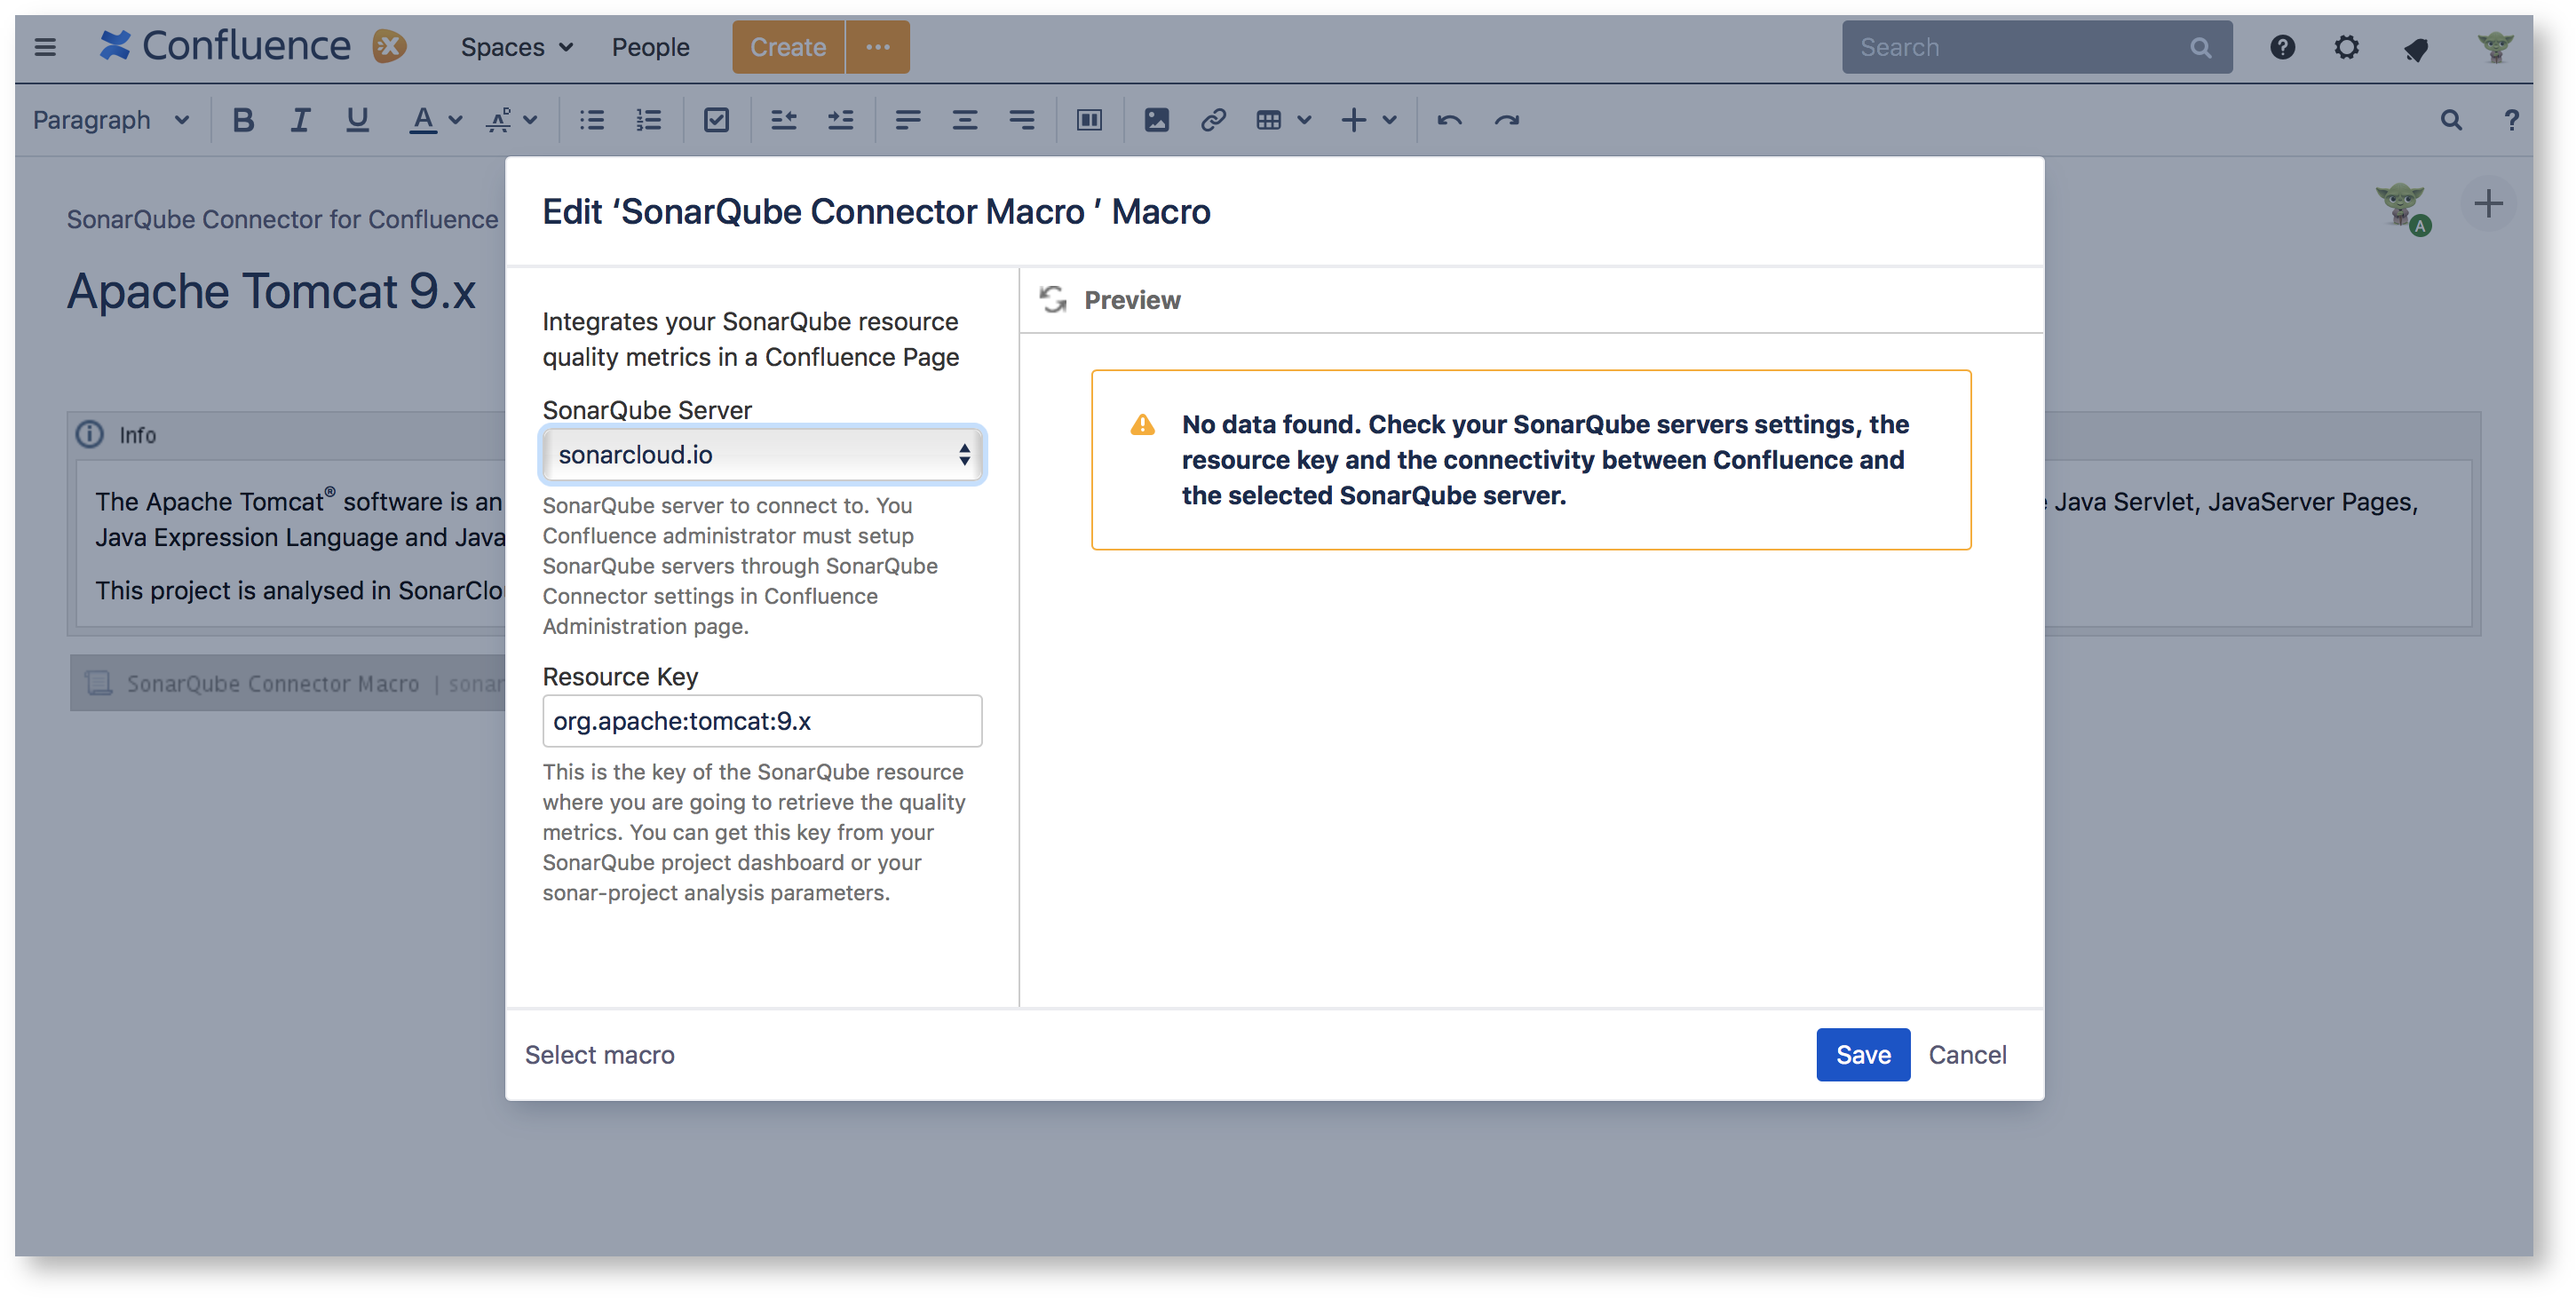 Macro Usage - SonarQube Connector for Confluence - Confluence